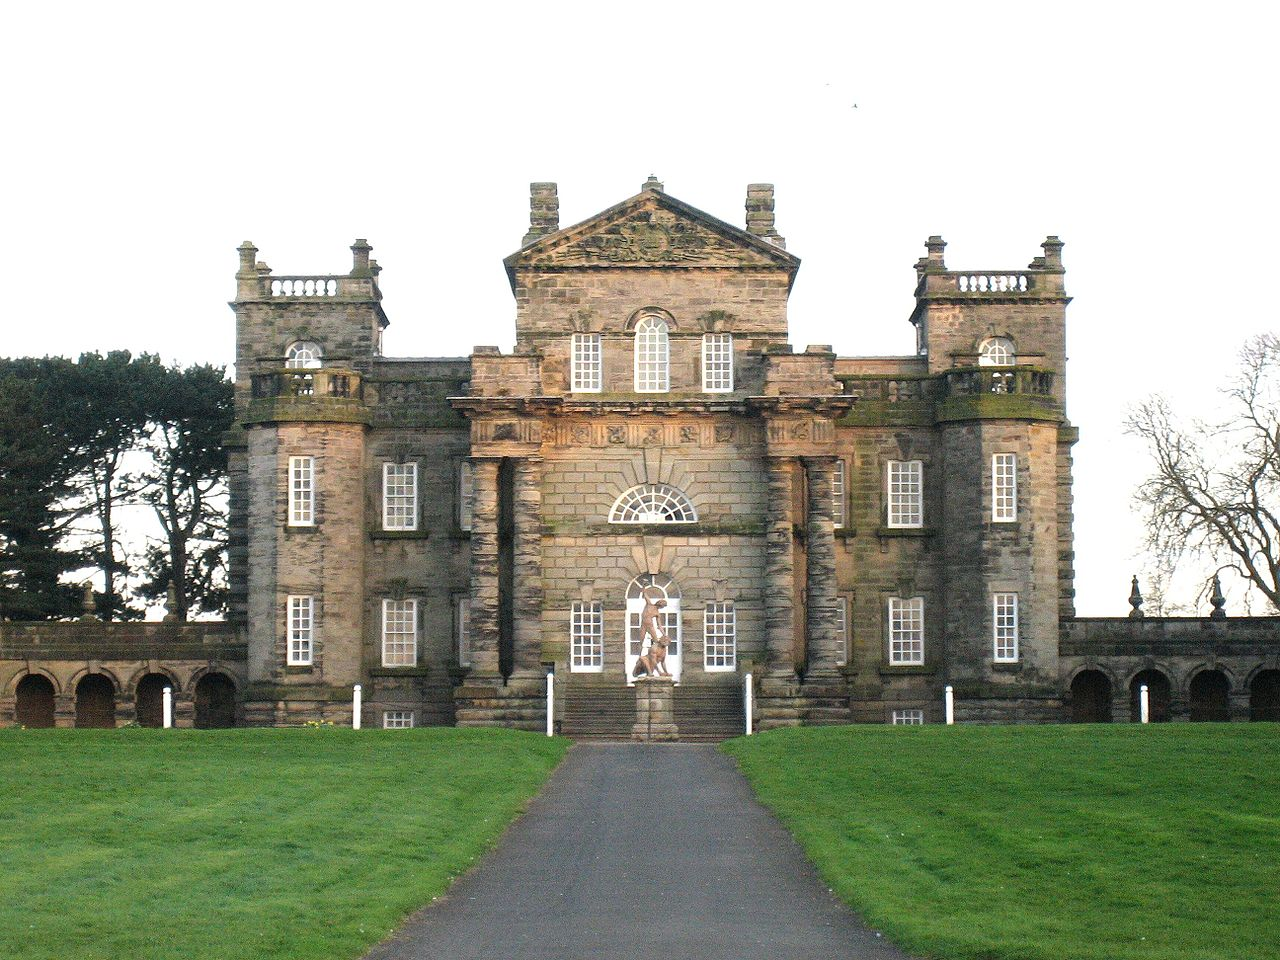 seaton online dating Dating search site  aberdeenshire gay cruisings cruising in public places has been part of gay life for centuries  more info on seaton park.